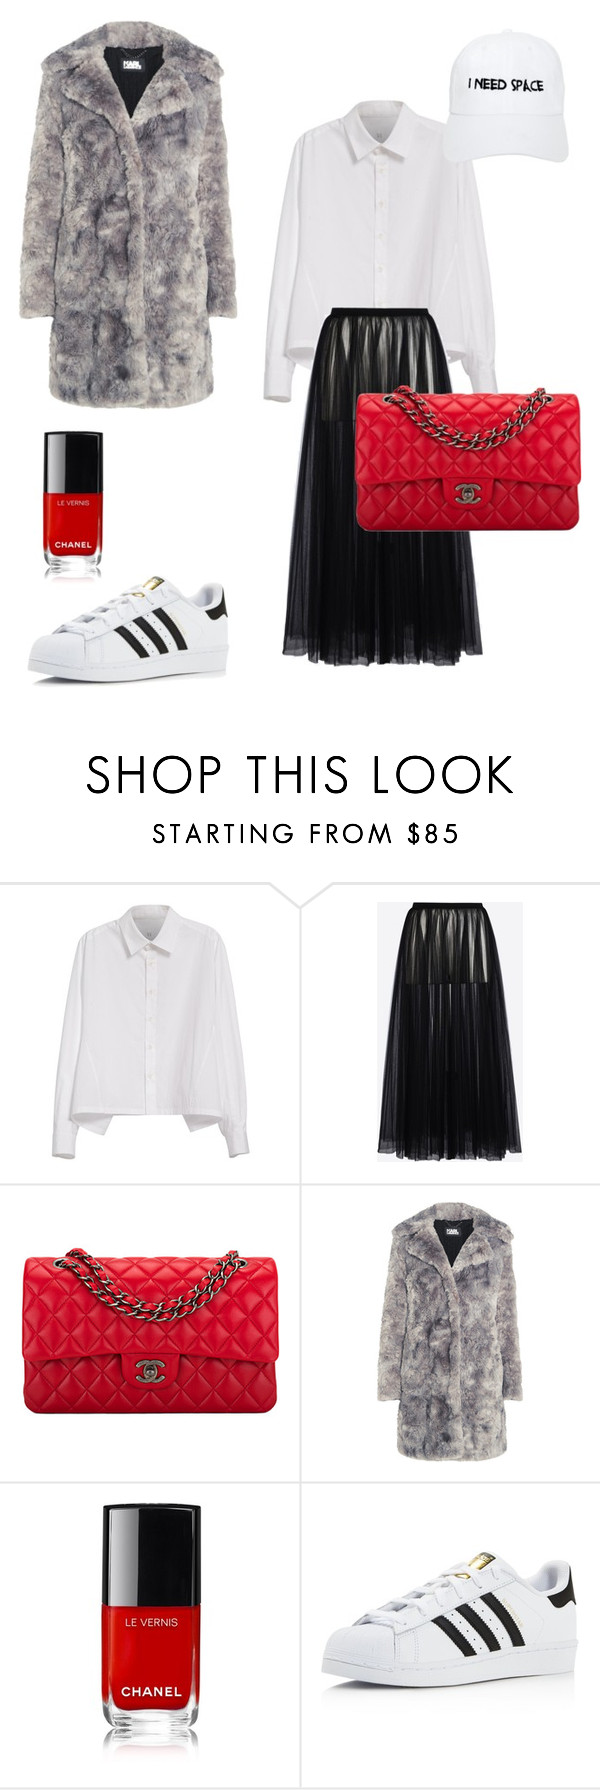 """""""I need space"""" by anacapao ❤ liked on Polyvore featuring Y's by Yohji Yamamoto, Valentino, Chanel, Karl Lagerfeld, adidas and Nasaseasons"""